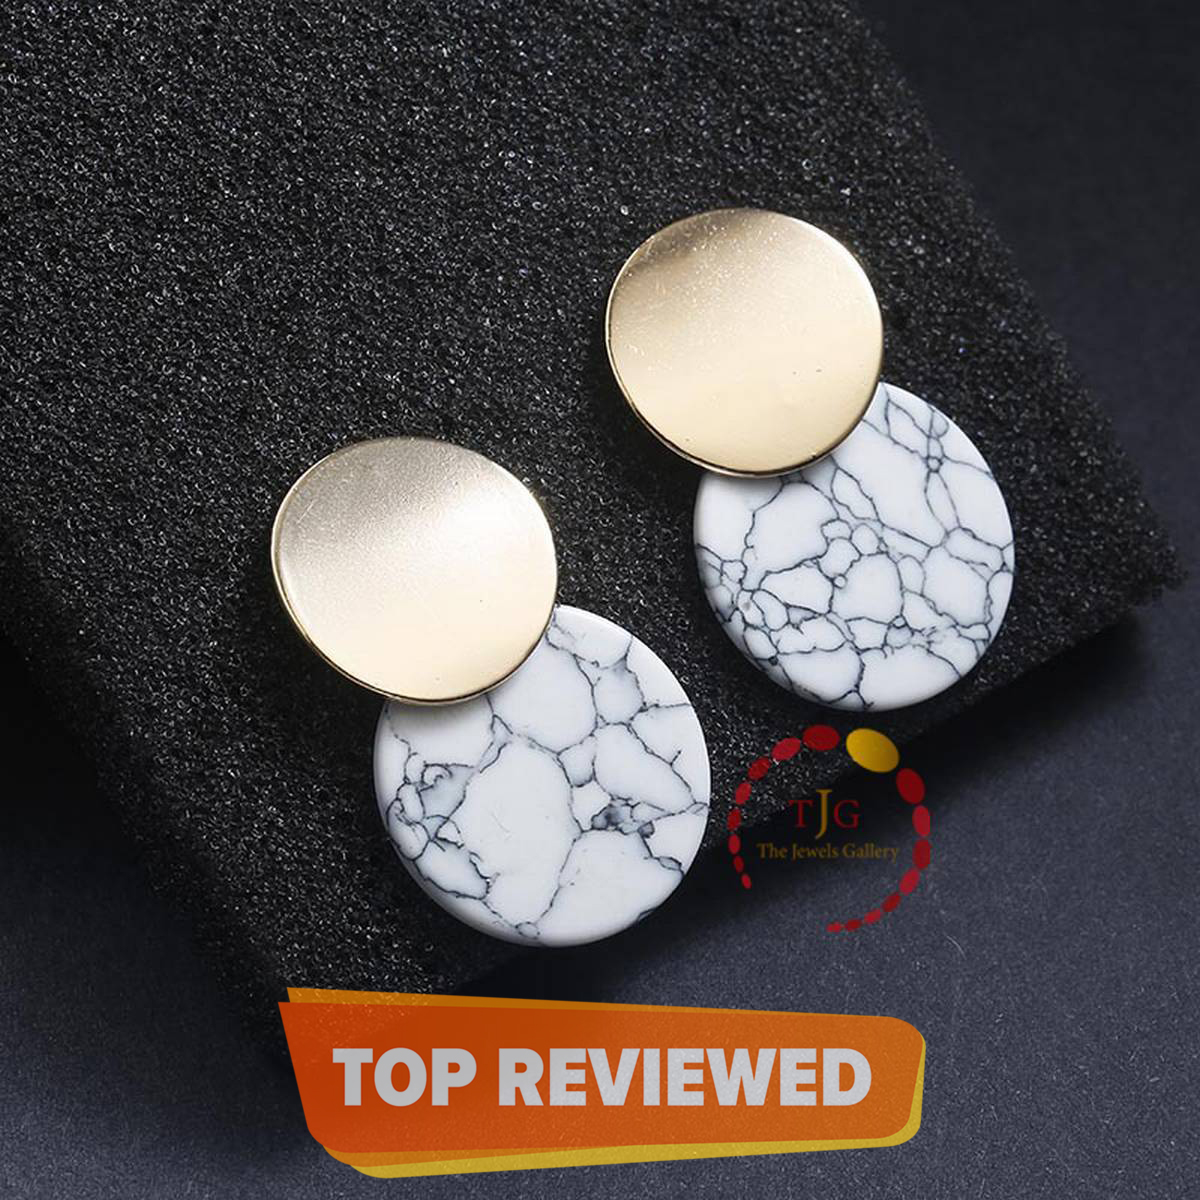 New Arrival Unique Double Round Drop Marble Earrings For Women 2021 Popular Retro Turquoise Geometric Statement Earrings